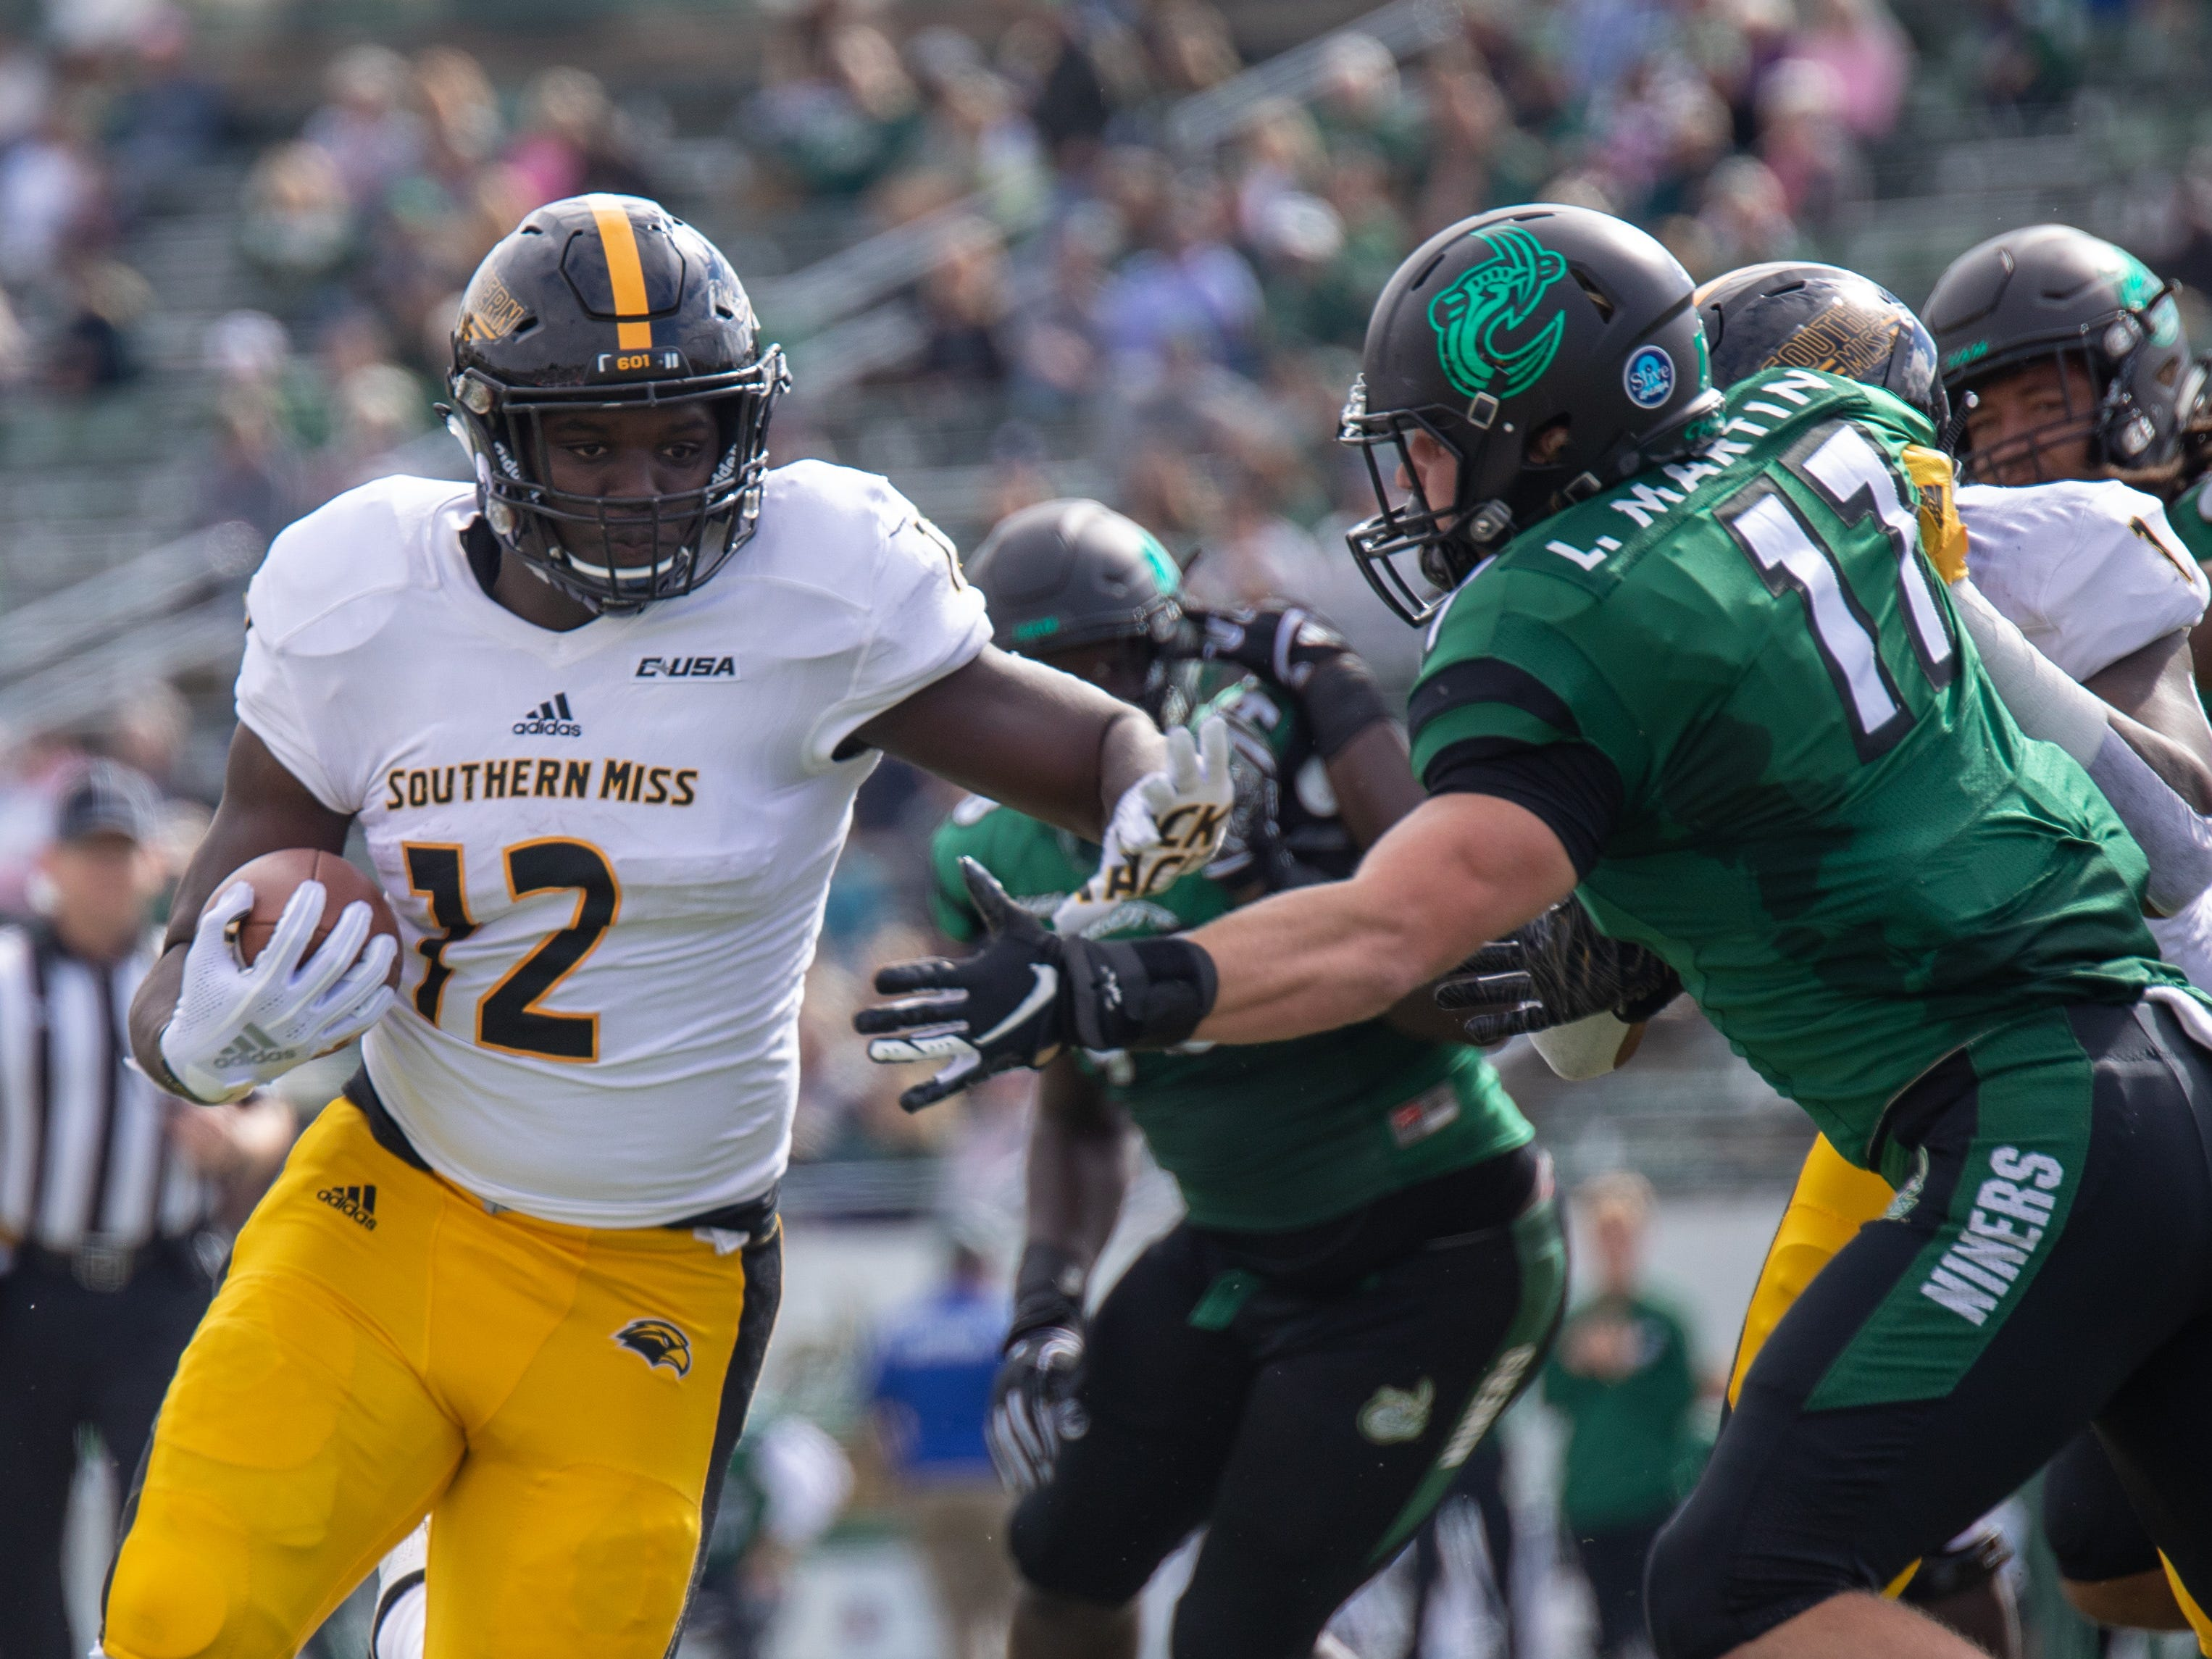 Southern Miss tailback Steven Anderson (12) tries to hit the corner as Charlotte defender Luke Martin (17) tries to make the tackle Saturday in Charlotte, N.C.